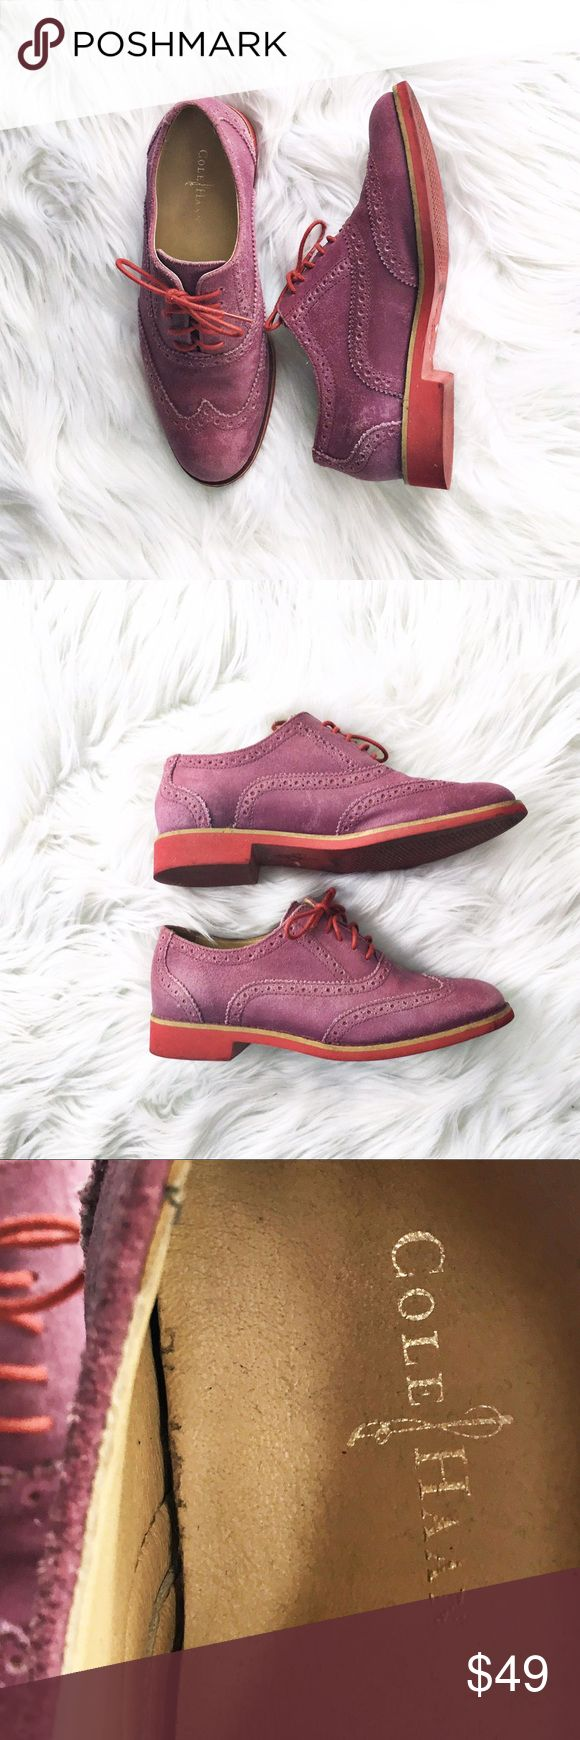 Cole Haan suede Oxford shoes Adorable purple suede oxfords from Cole Haan, size 5.5. Mild wear on the soles, uppers are in excellent condition. Cole Haan Shoes Flats & Loafers